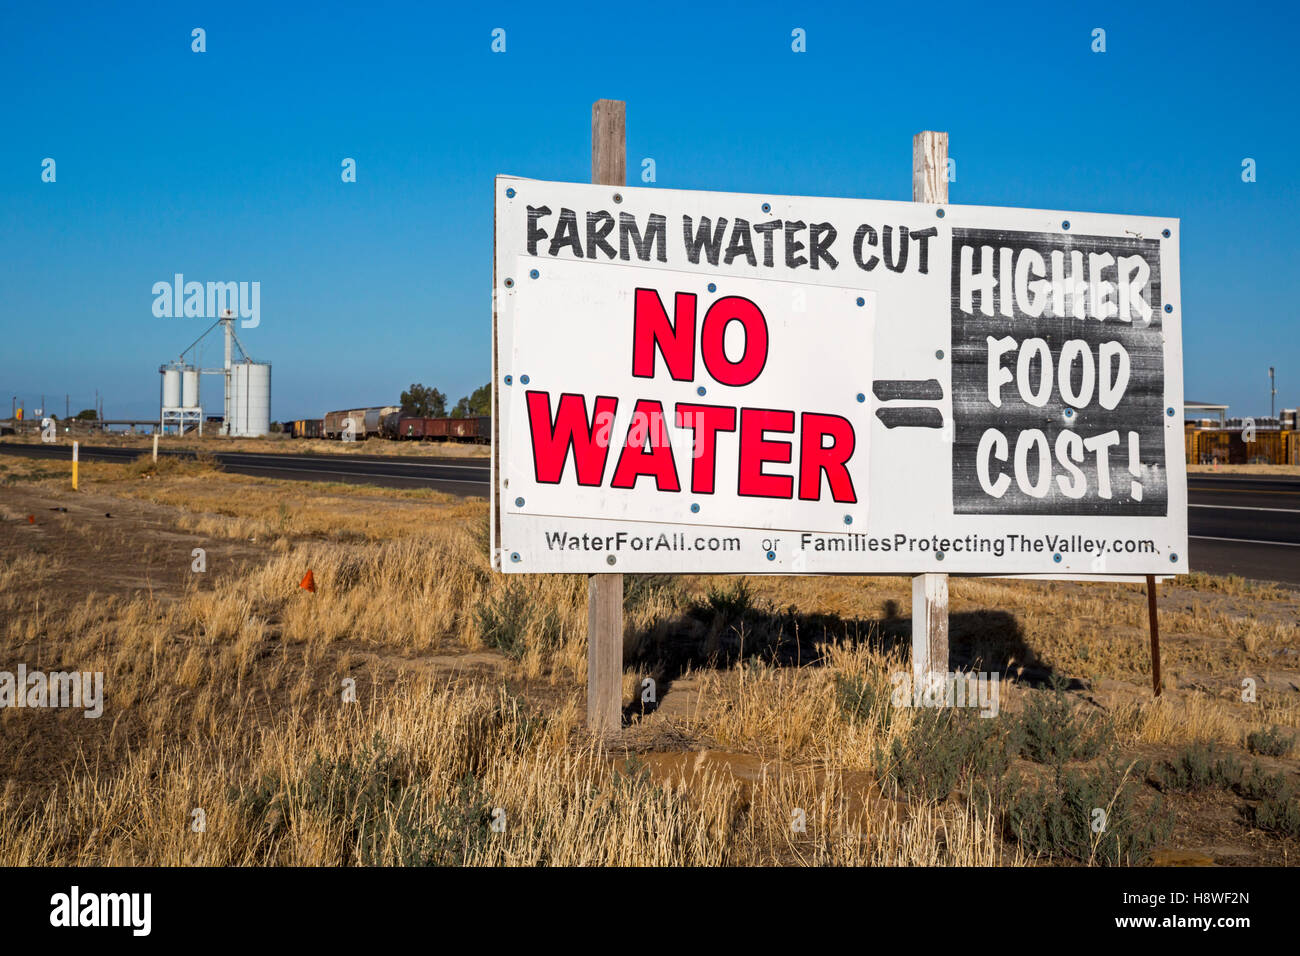 Buttonwillow, California - A sign on a farm in the San Joaquin Valley equates water shortages to higher food prices. - Stock Image